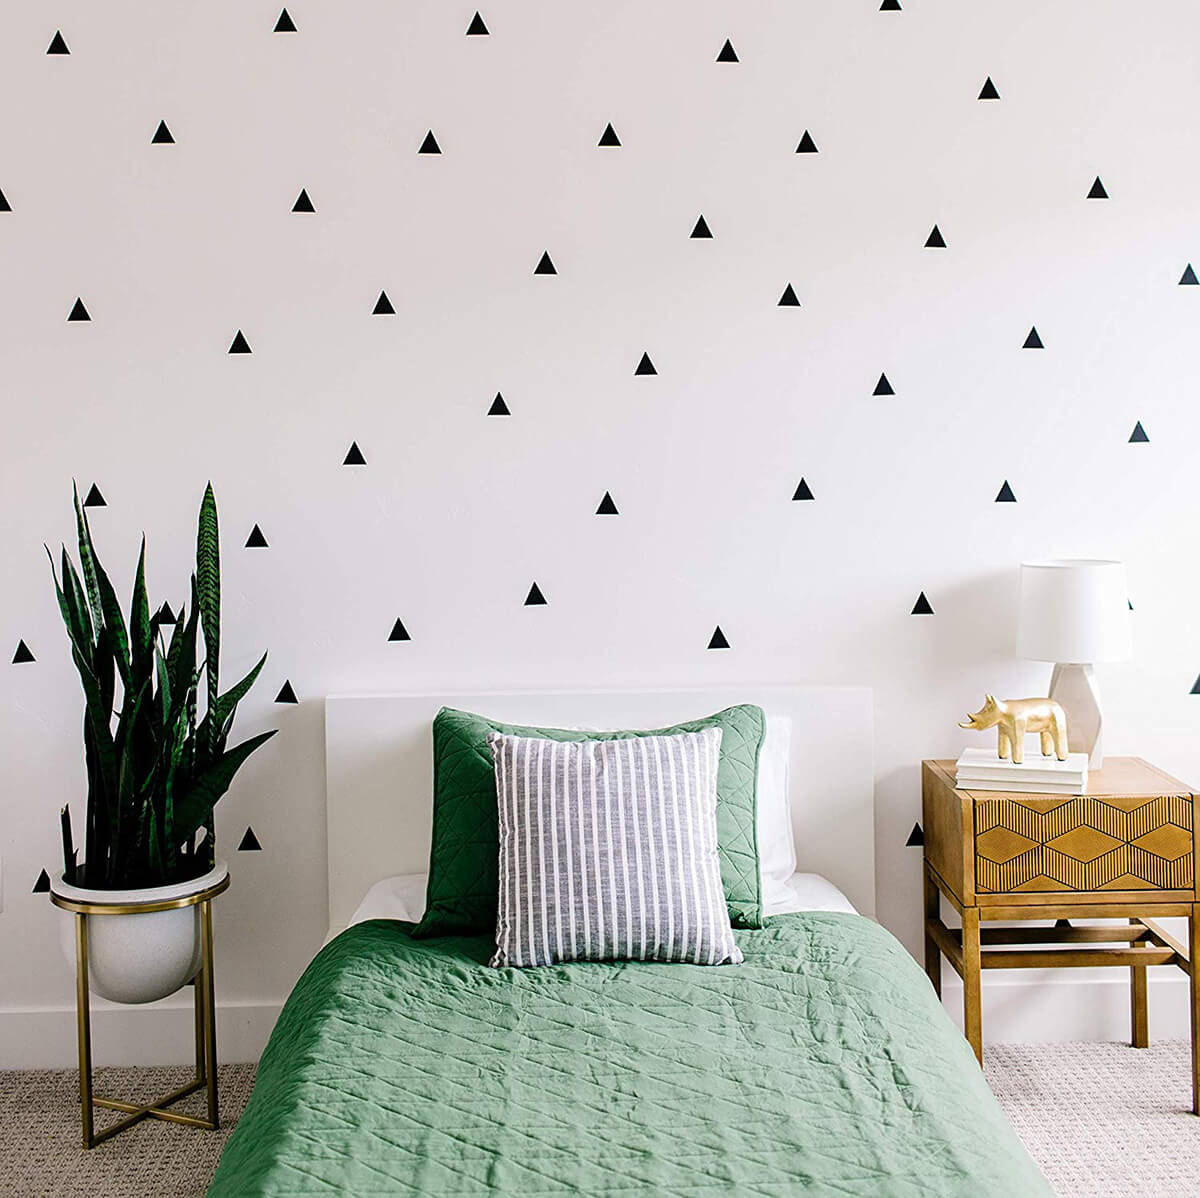 Modern Black Triangle Decals to Accent Your Wall